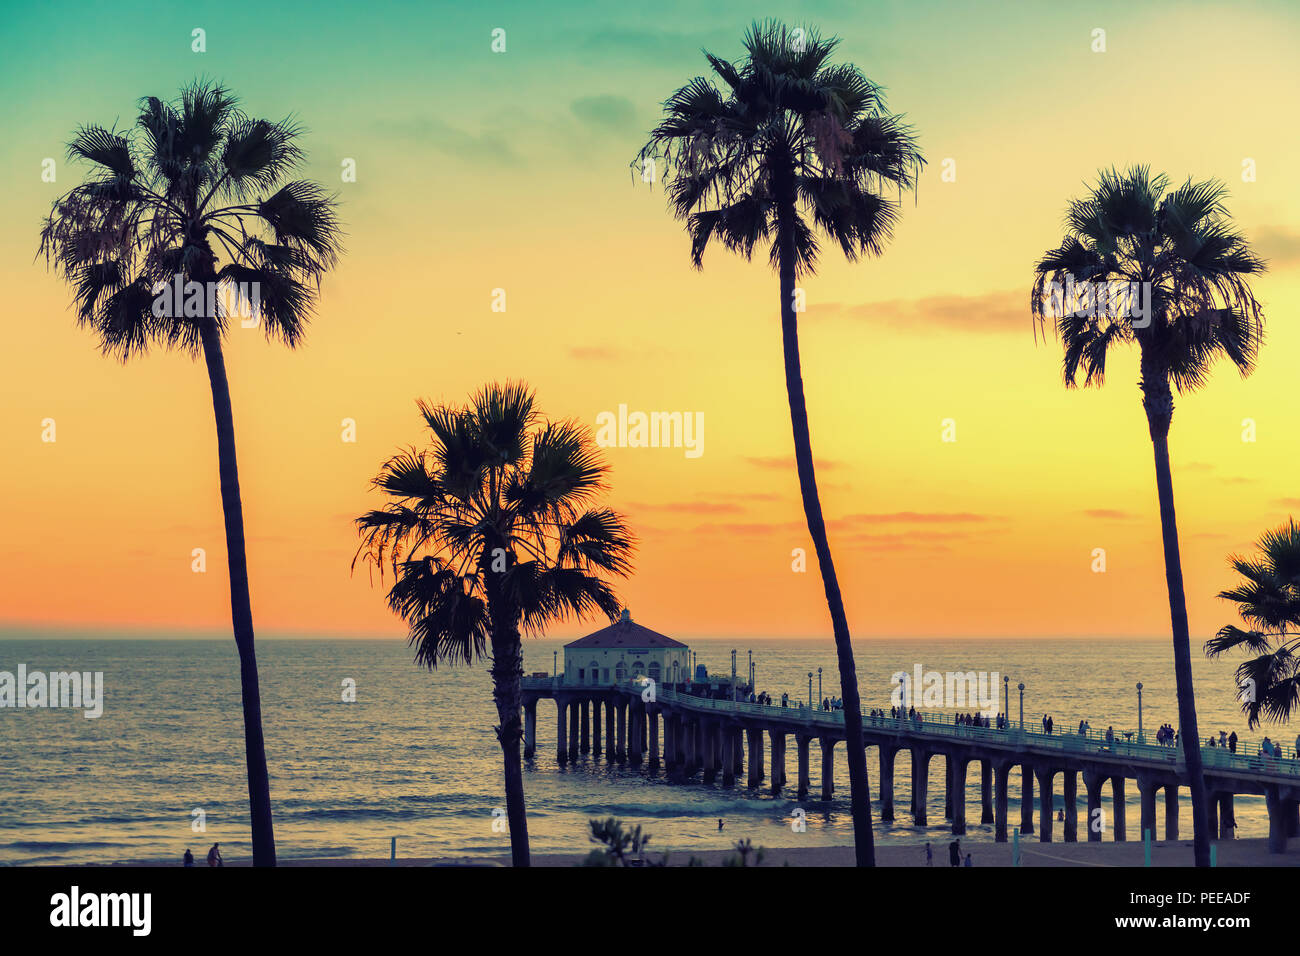 Manhattan Beach at sunset in California, Los Angeles - Stock Image